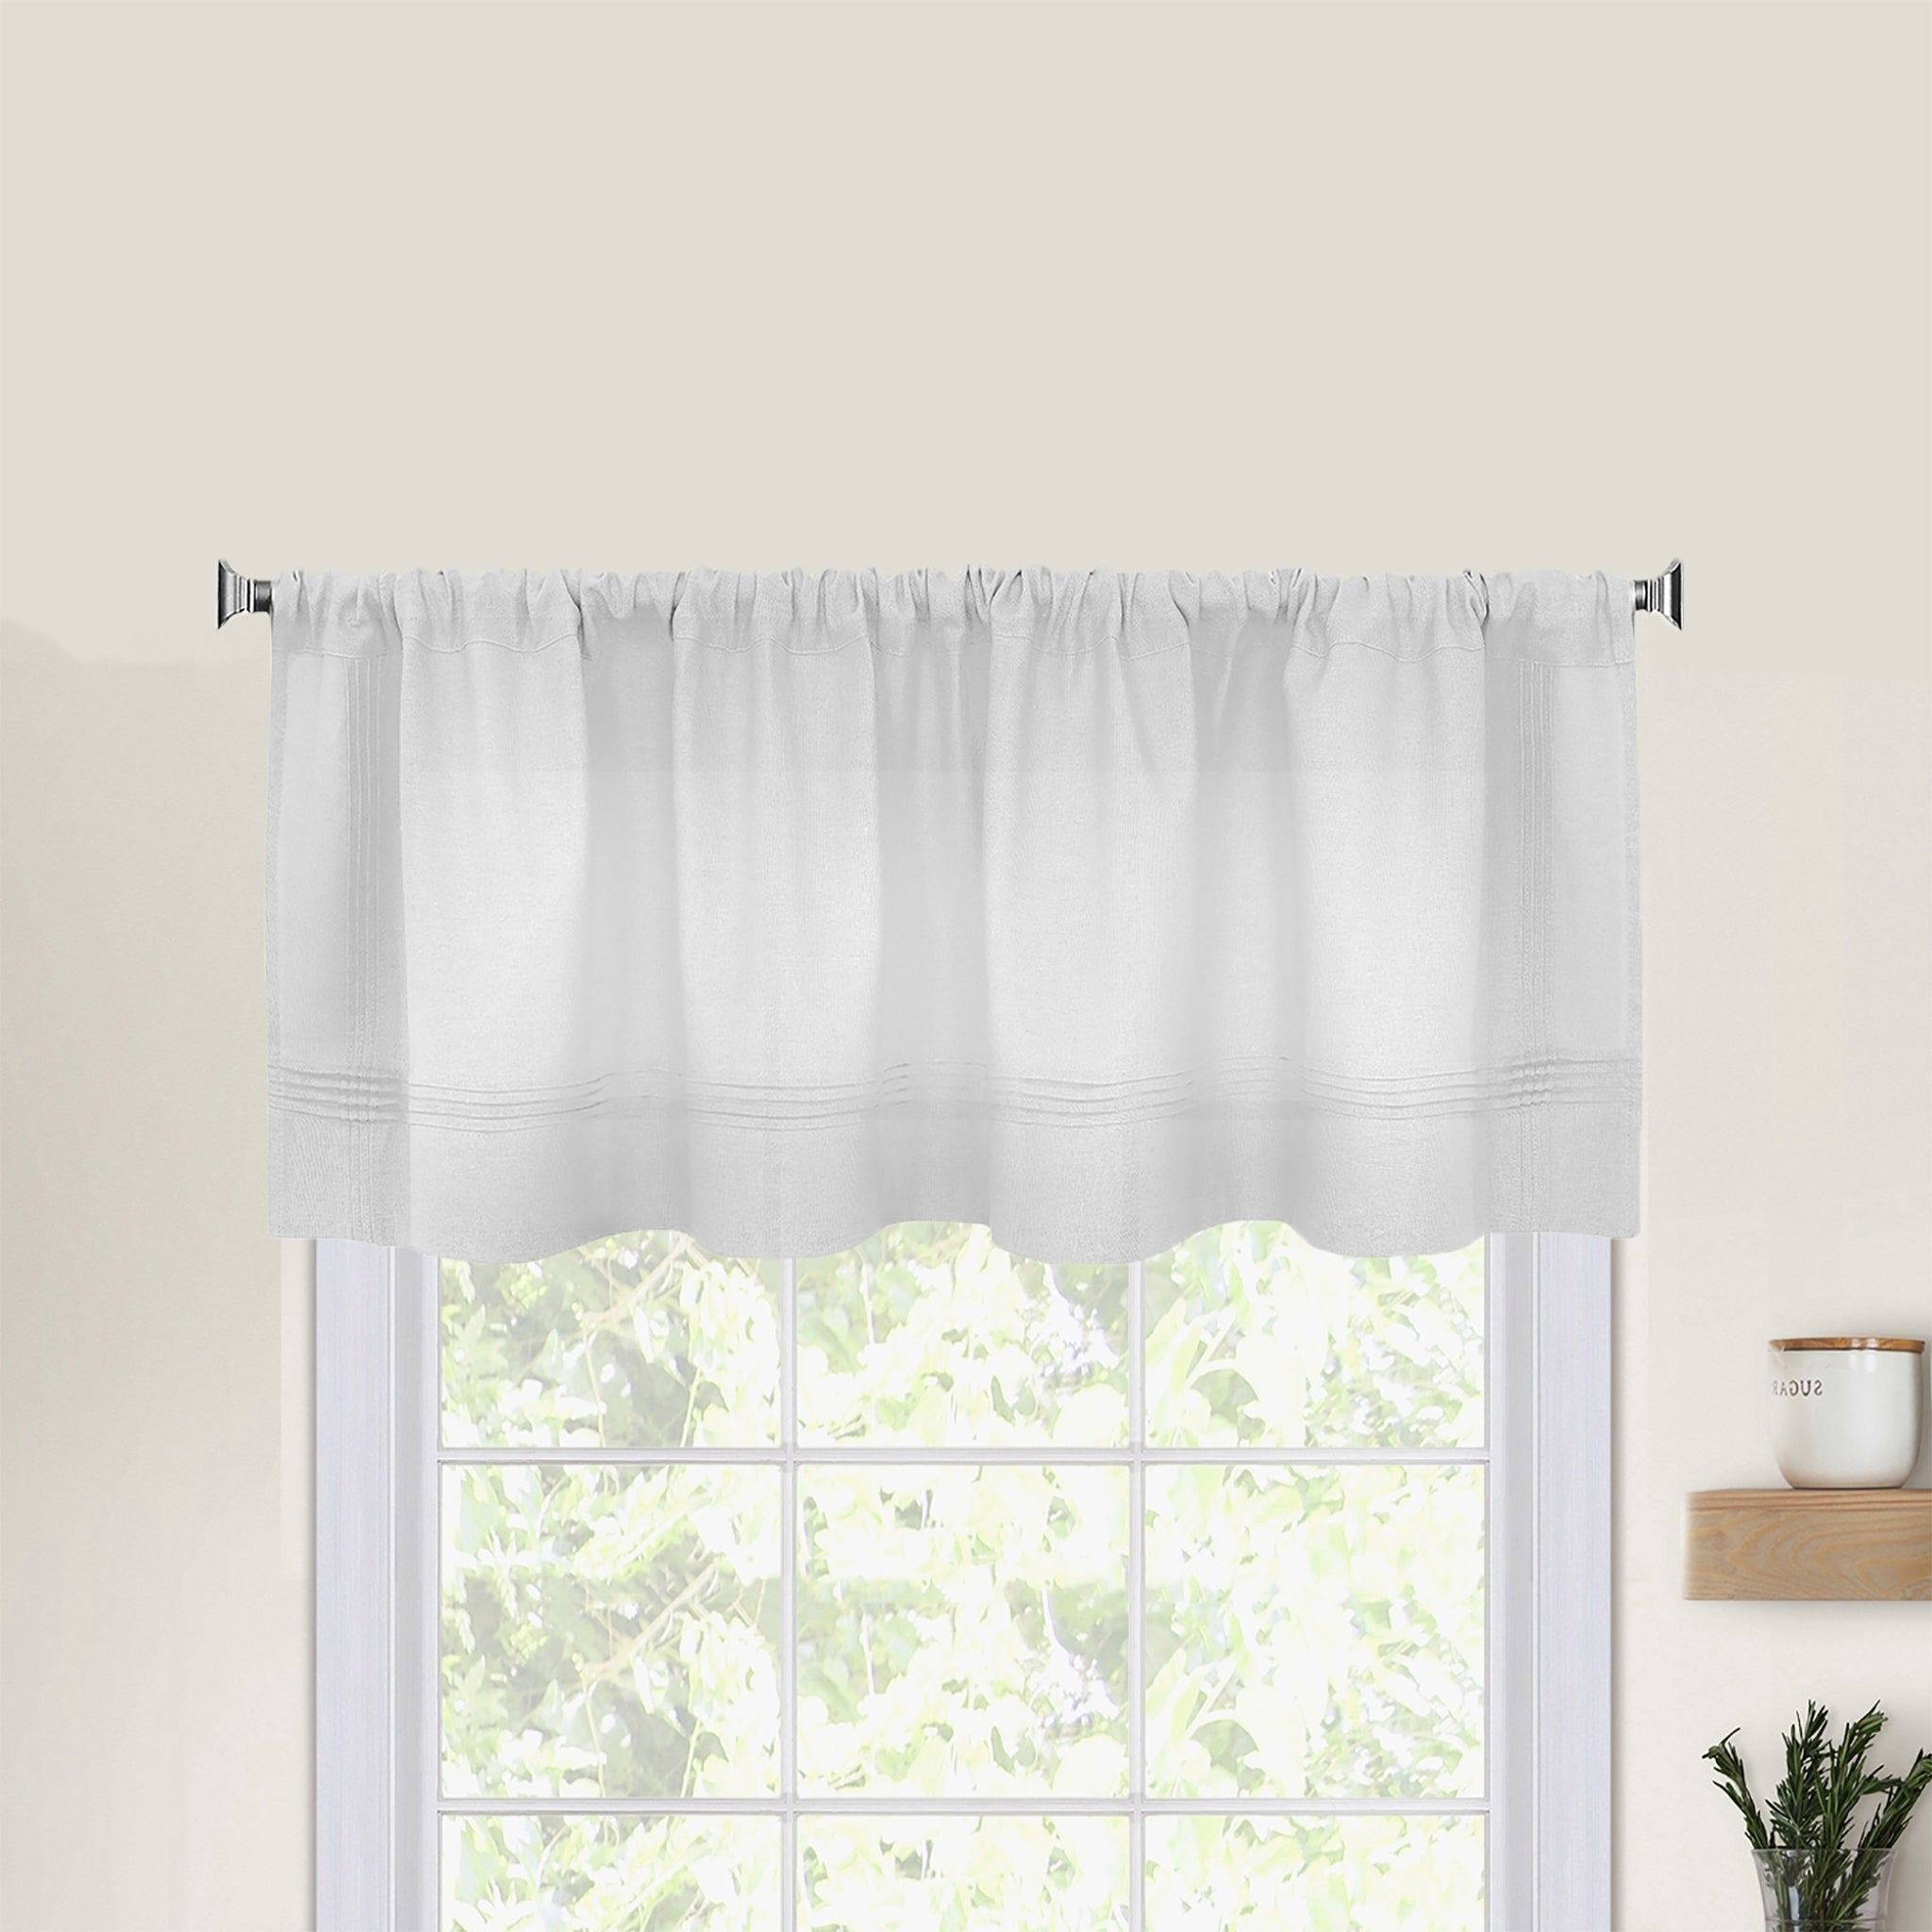 Pintuck Kitchen Window Valance Intended For 2020 Pintuck Kitchen Window Tiers (View 5 of 20)